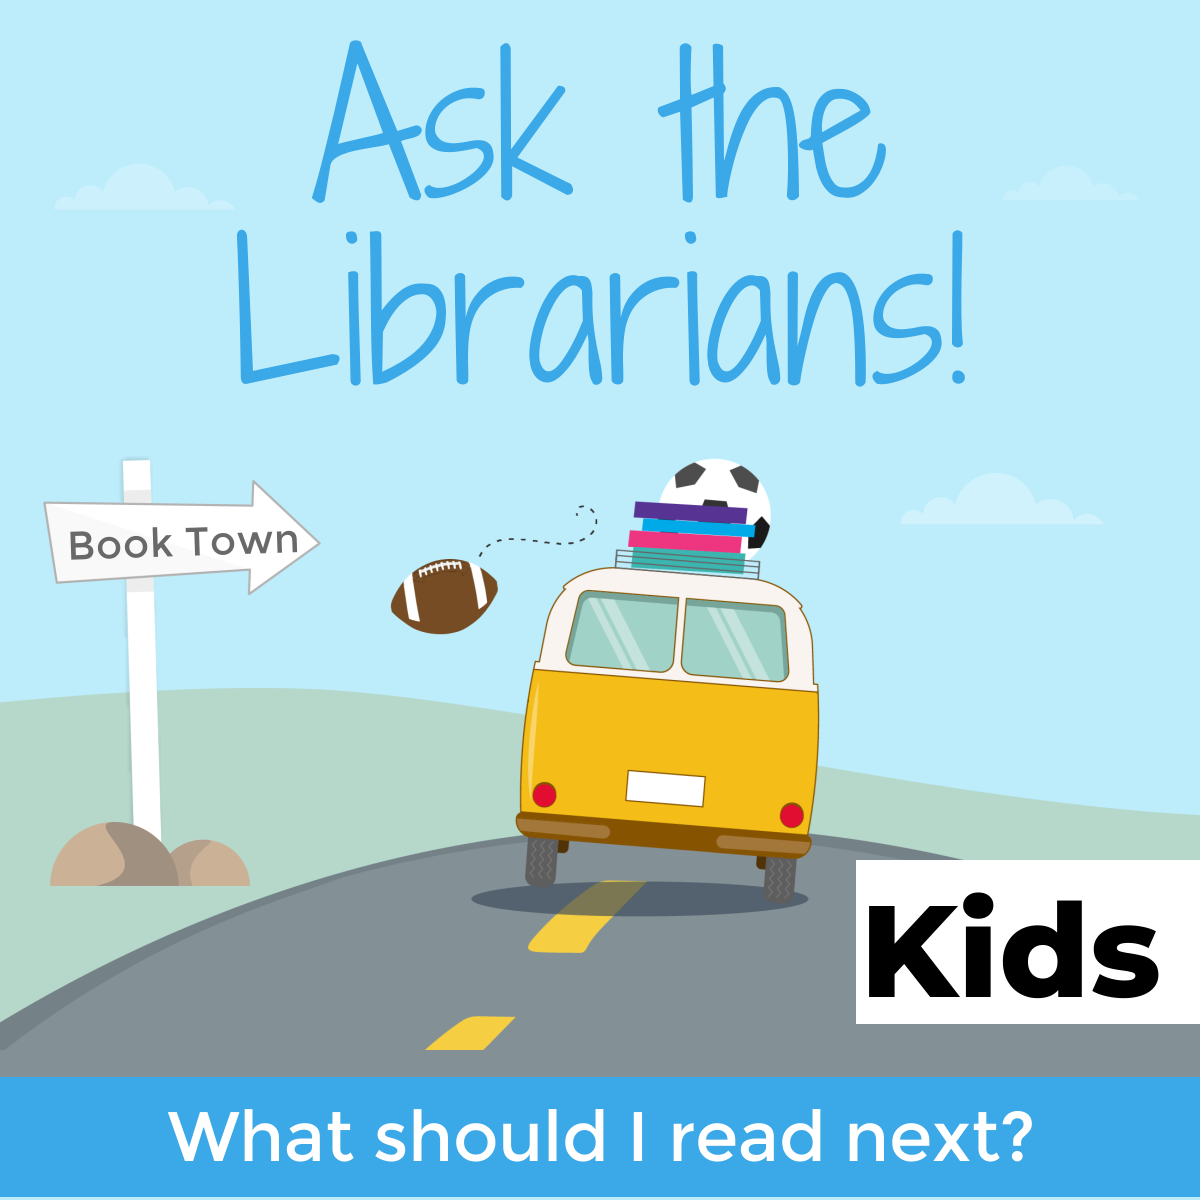 Ask the Librarian kids' form